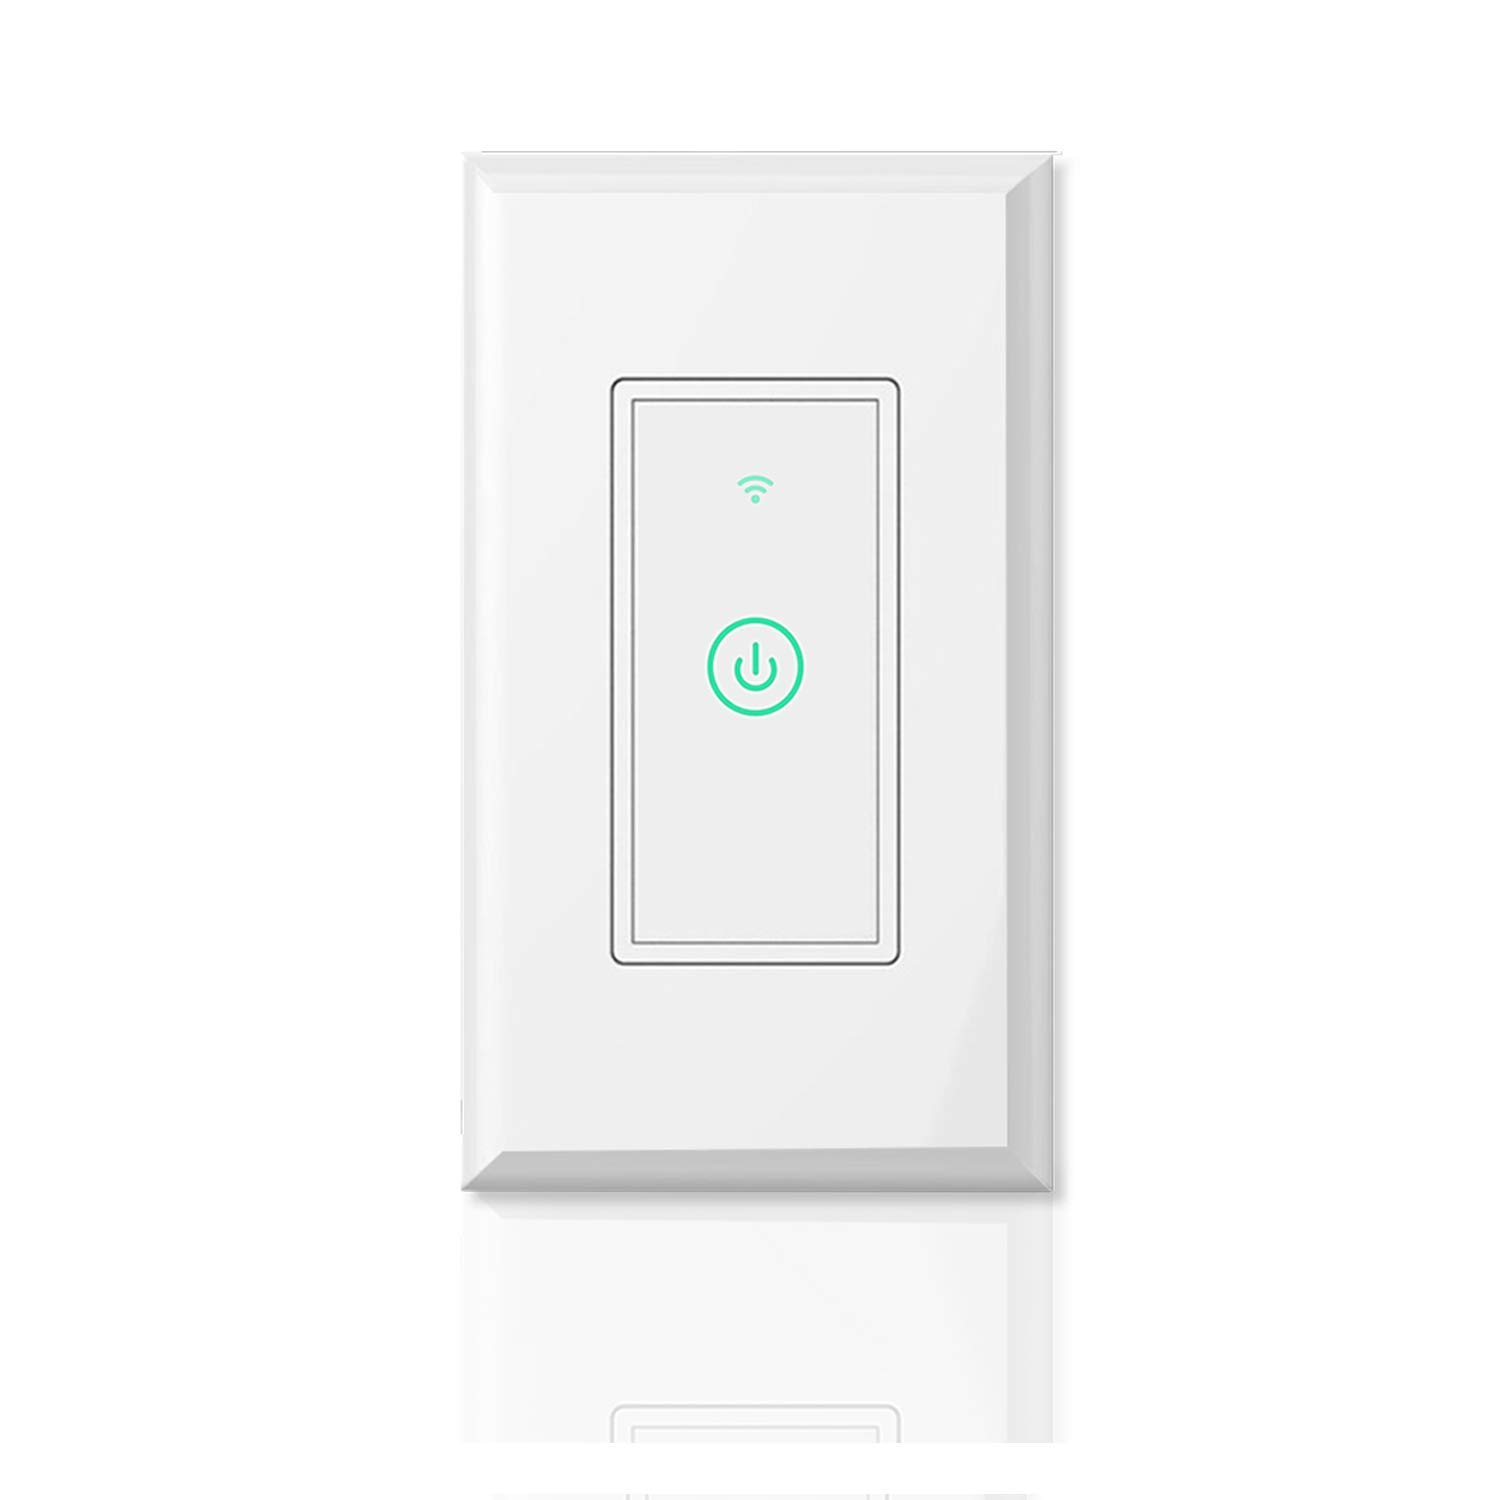 Meross Smart Wi Fi Wall Switch Works With Alexa Google Assistant And Neutral Wires That Have Been Switched As A Reference The American Ifttt Complies Us Ca Light Switches Remote Control Timing Function